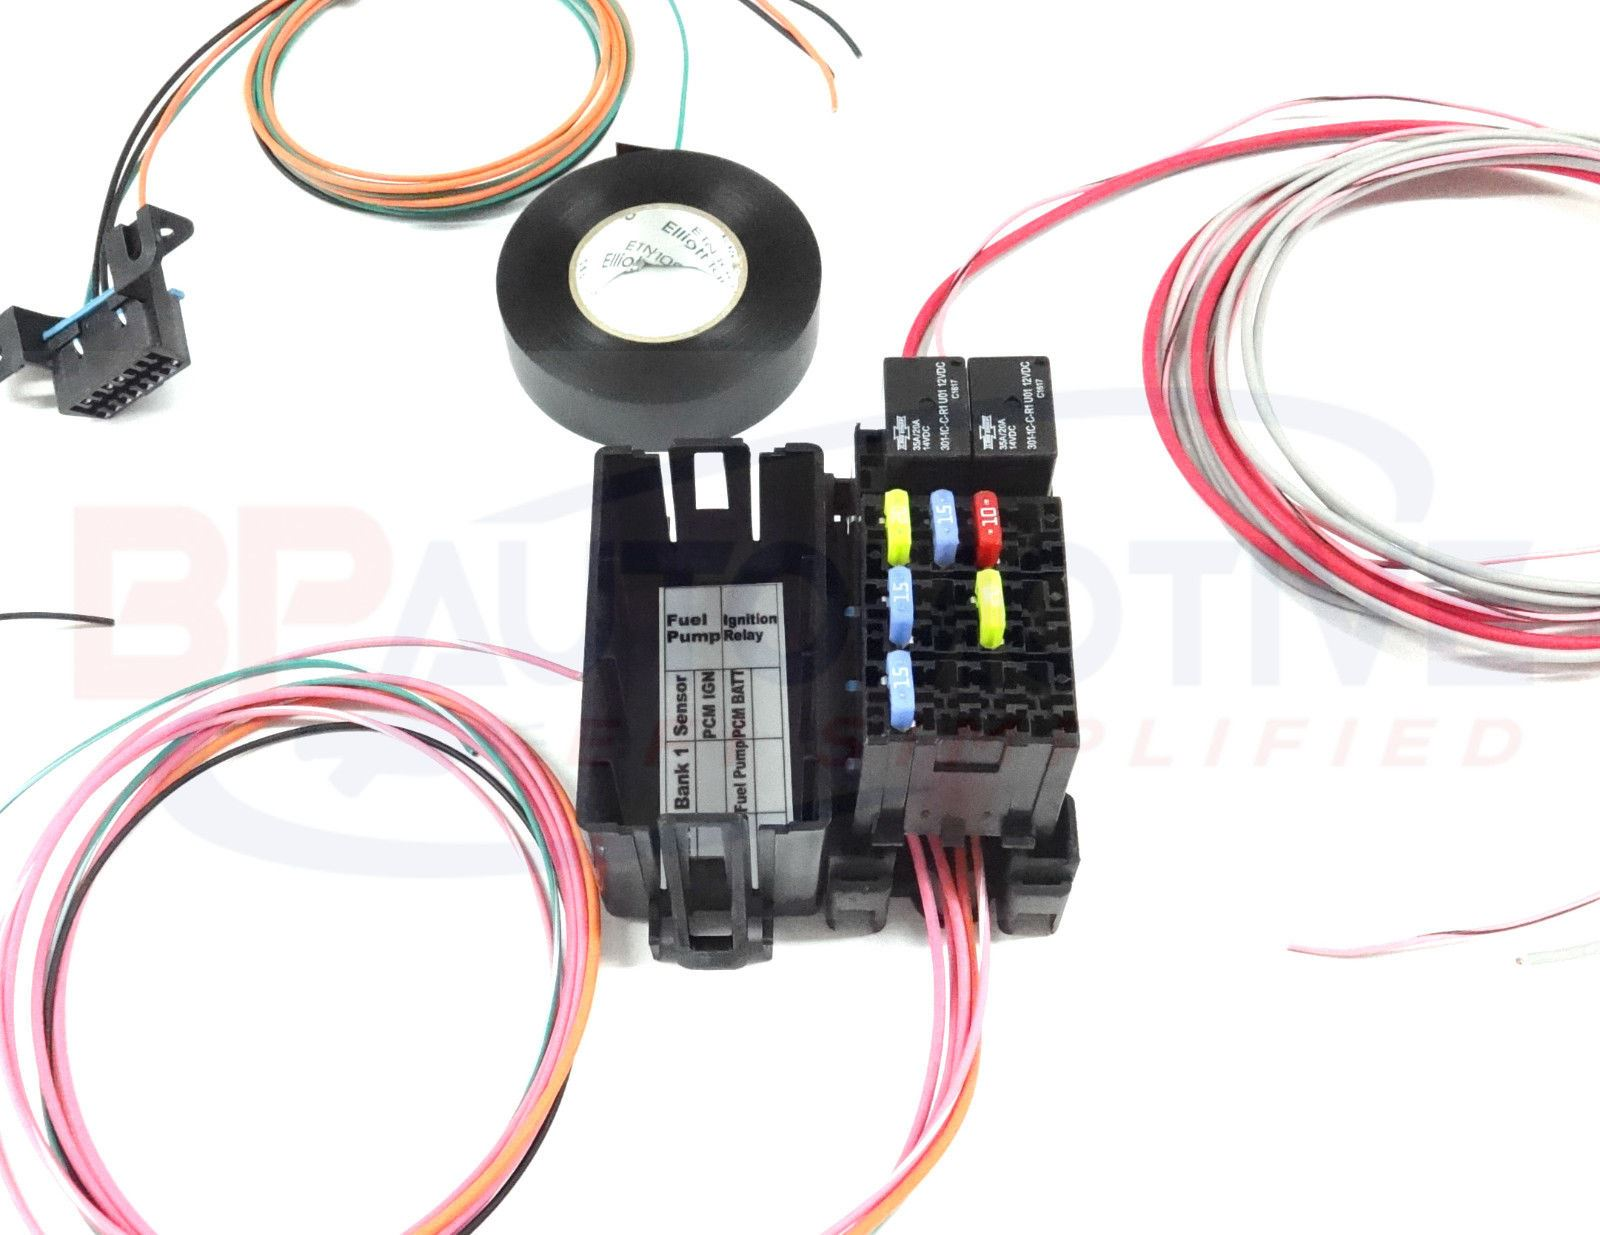 Magnificent Ls Swap Diy Harness Rework Fuse Block Kit For Ls Standalone Harness Wiring Cloud Oideiuggs Outletorg